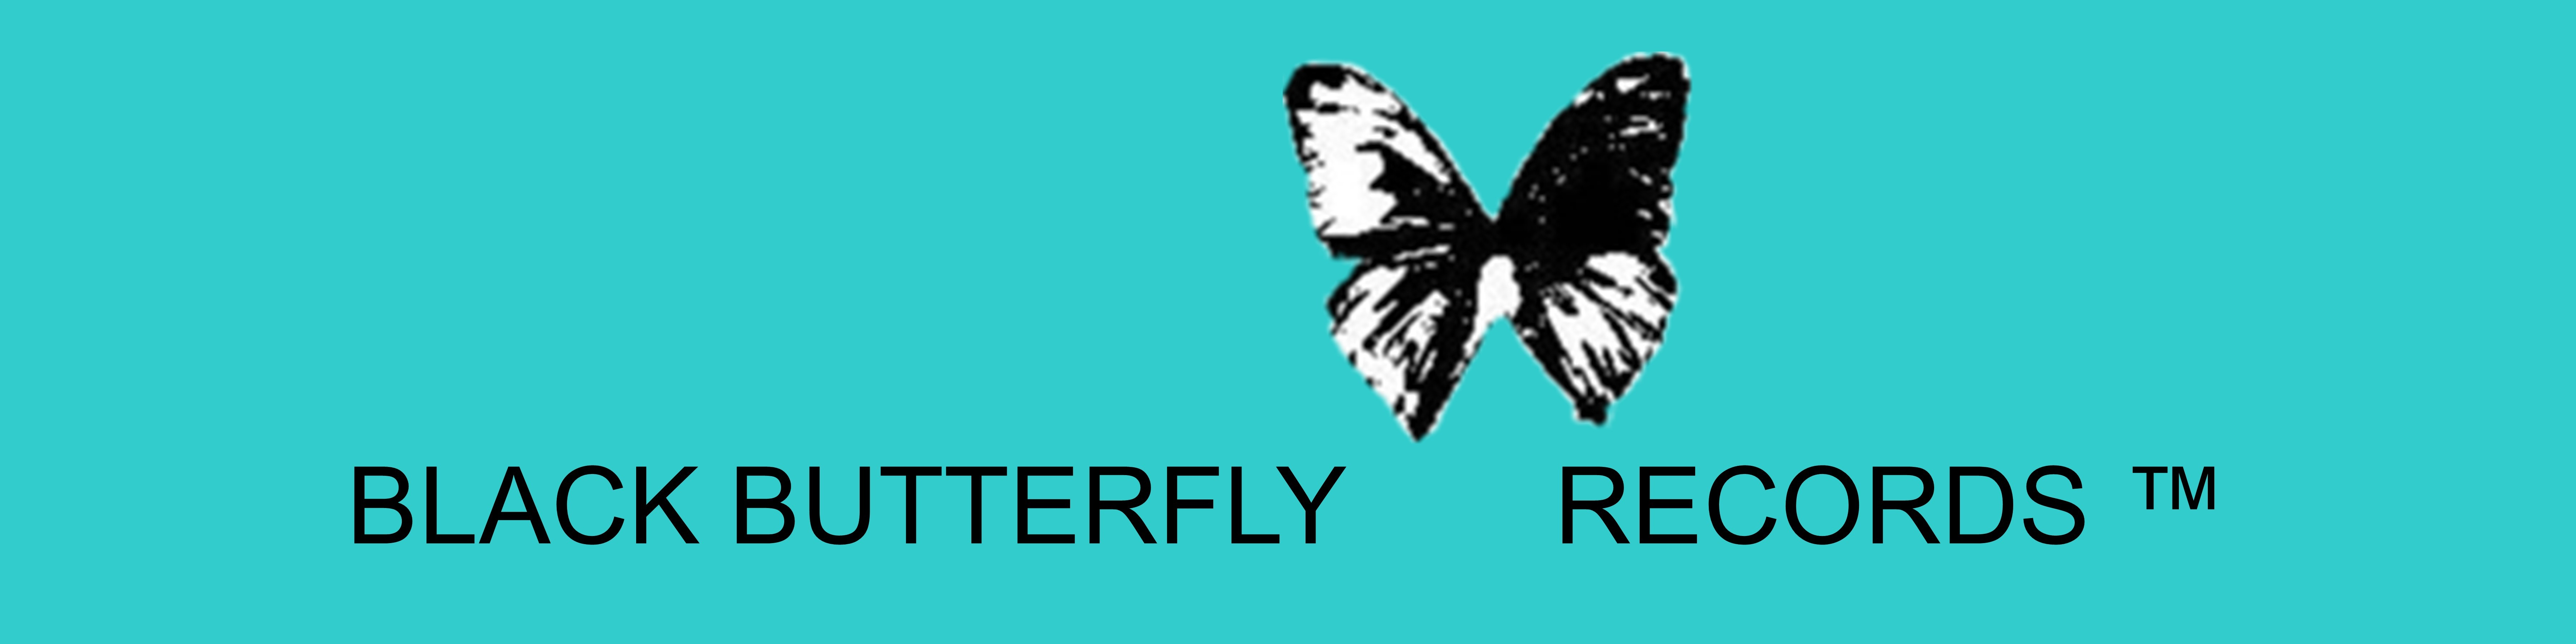 Black Butterfly Records Trademark